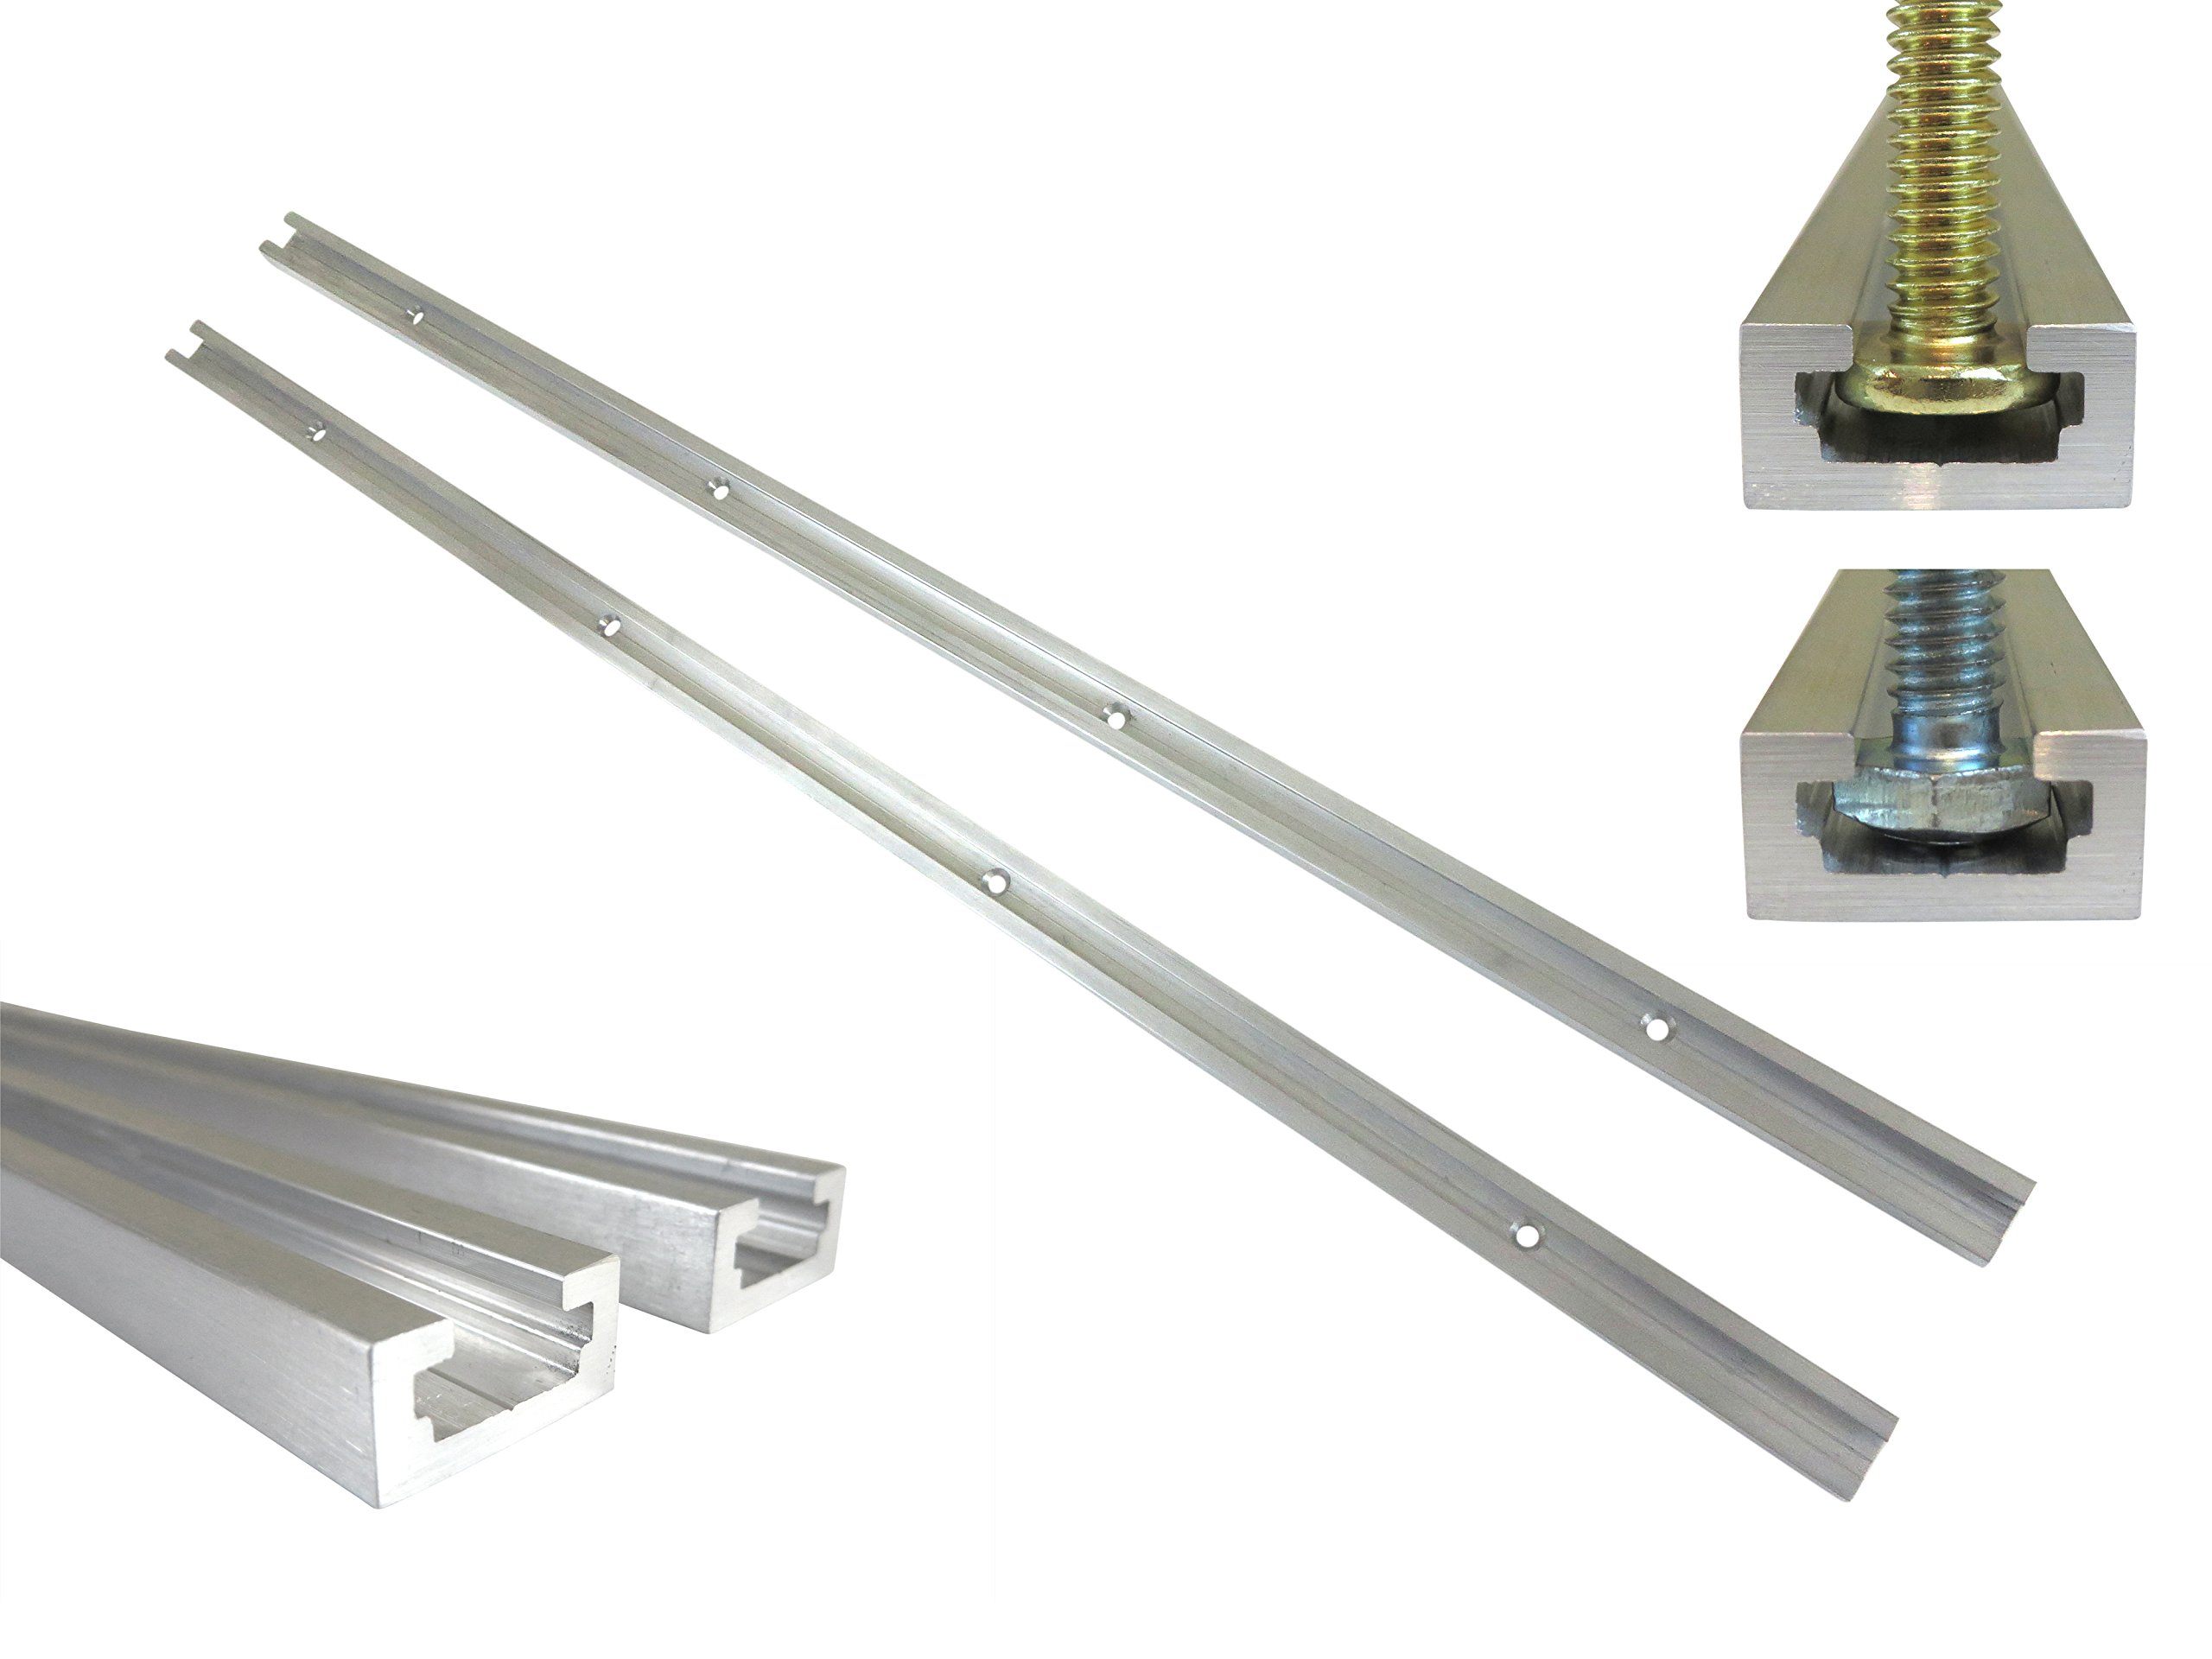 Lot 2 Each 24'' Aluminum T Track 3/4'' by 3/8'' Slot, Accepts 1/4'' Hex Bolts, 1/4'' or 5/16'' T Bolts, Countersunk Holes Every 6'' 112112